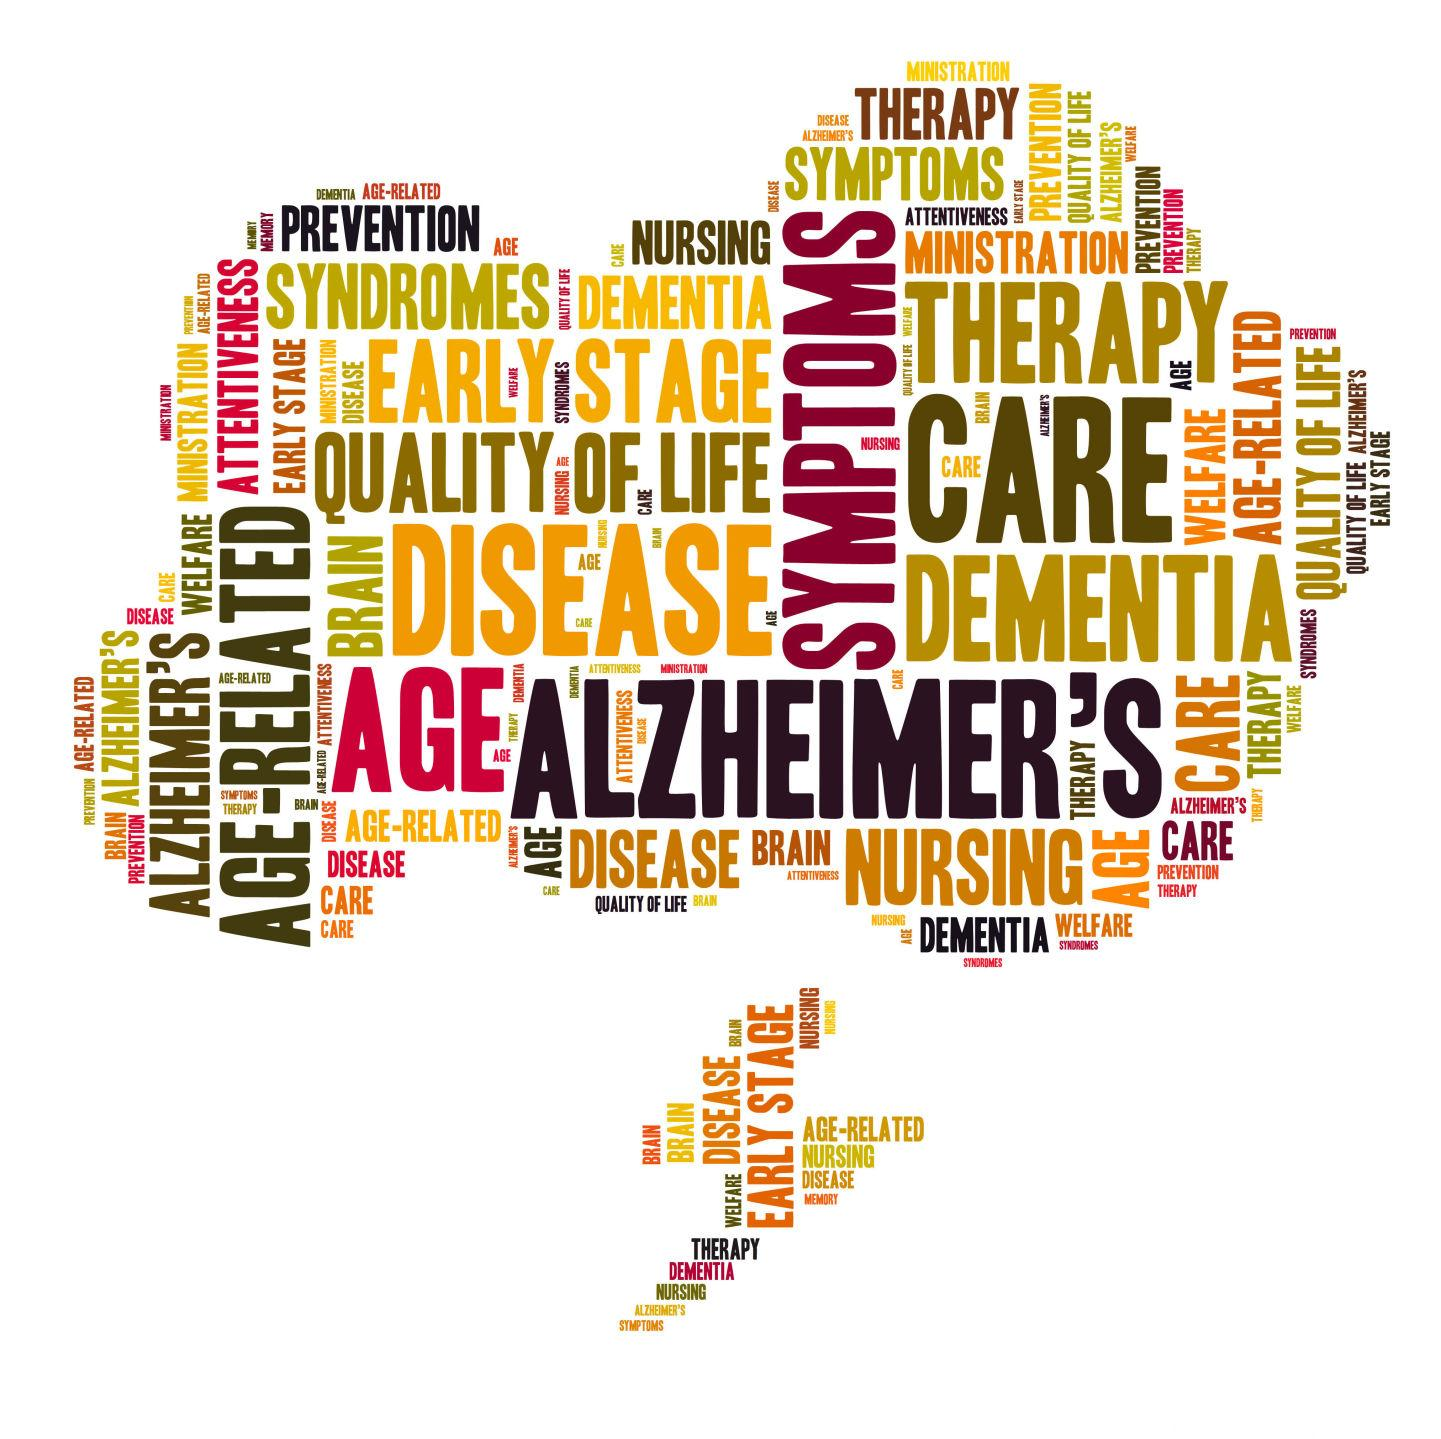 Alzheimers Q&A: Is there a link between aspartame and Alzheimer;s?